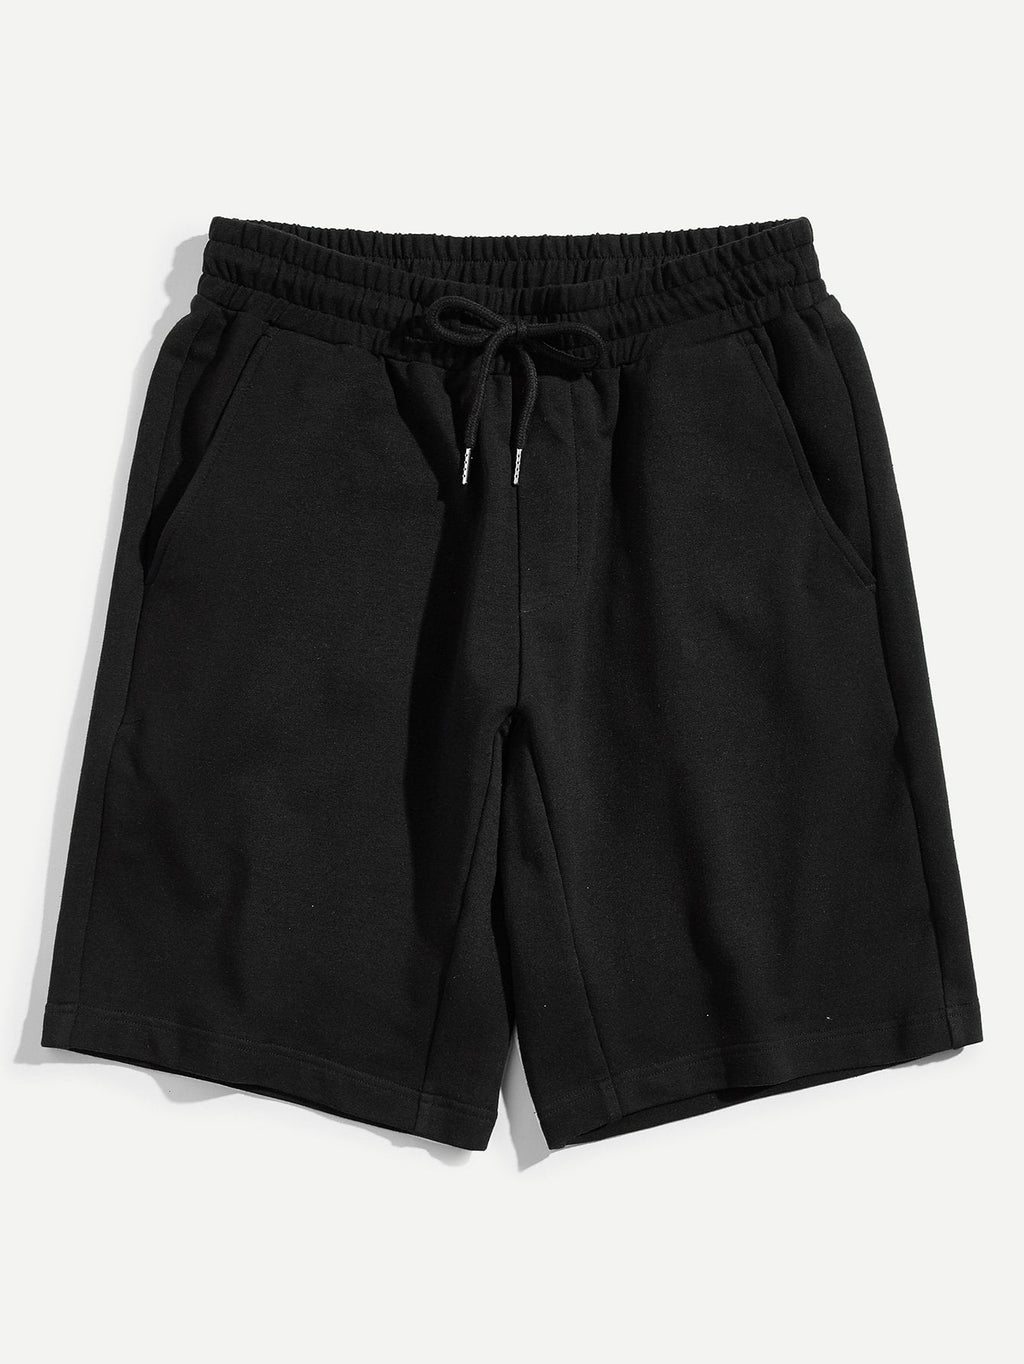 Men's Shorts - Drawstring Waist Solid Sweat Shorts